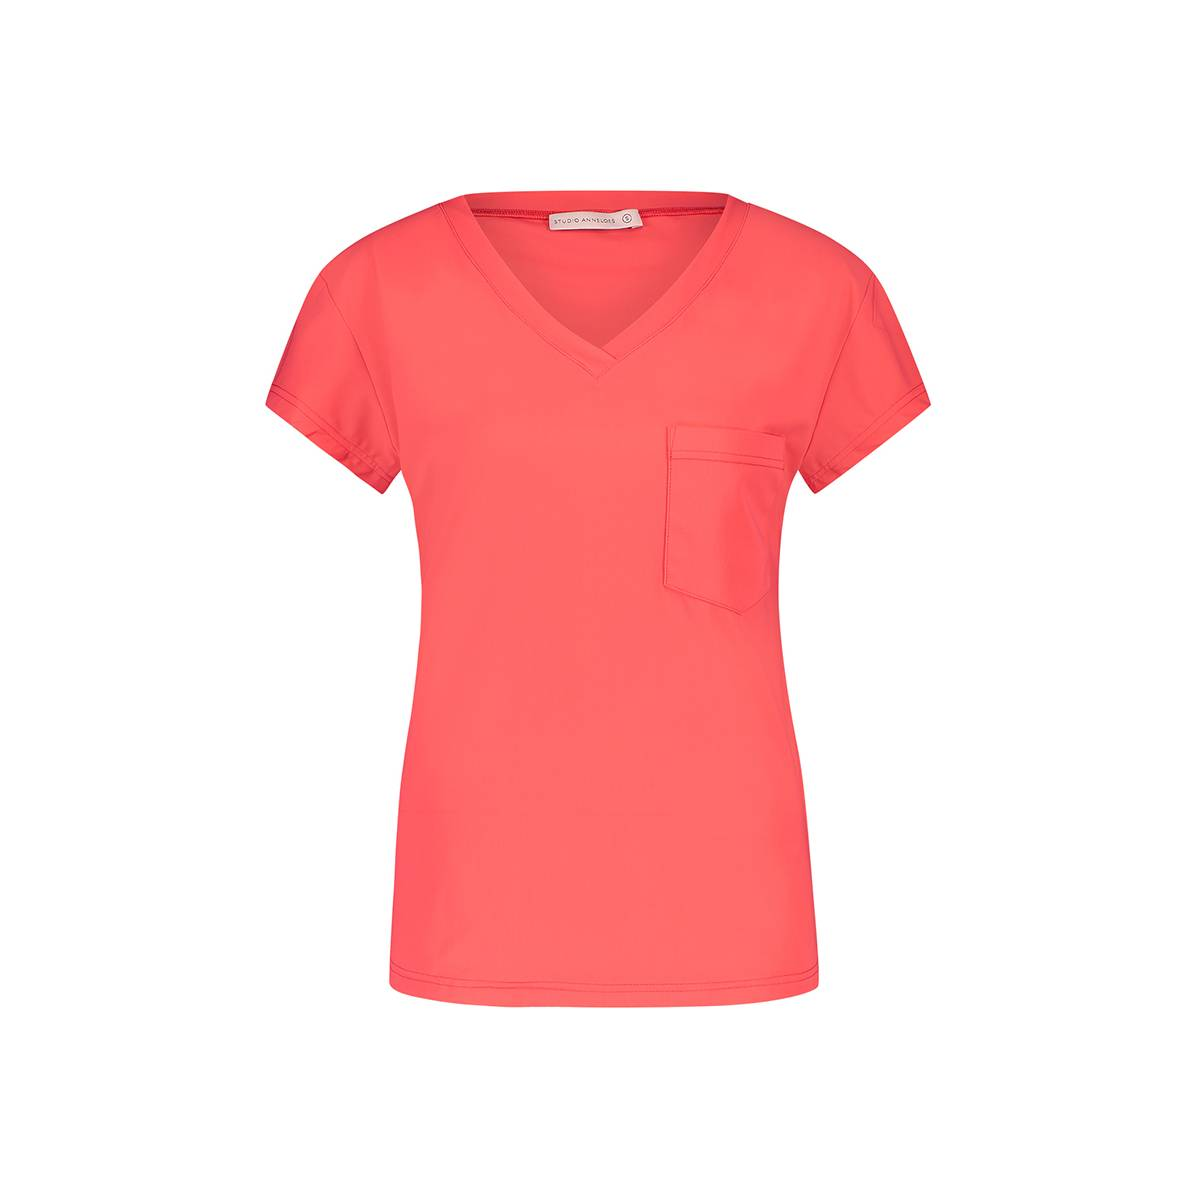 Studio Anneloes Roller SS shirt 04733 Rood